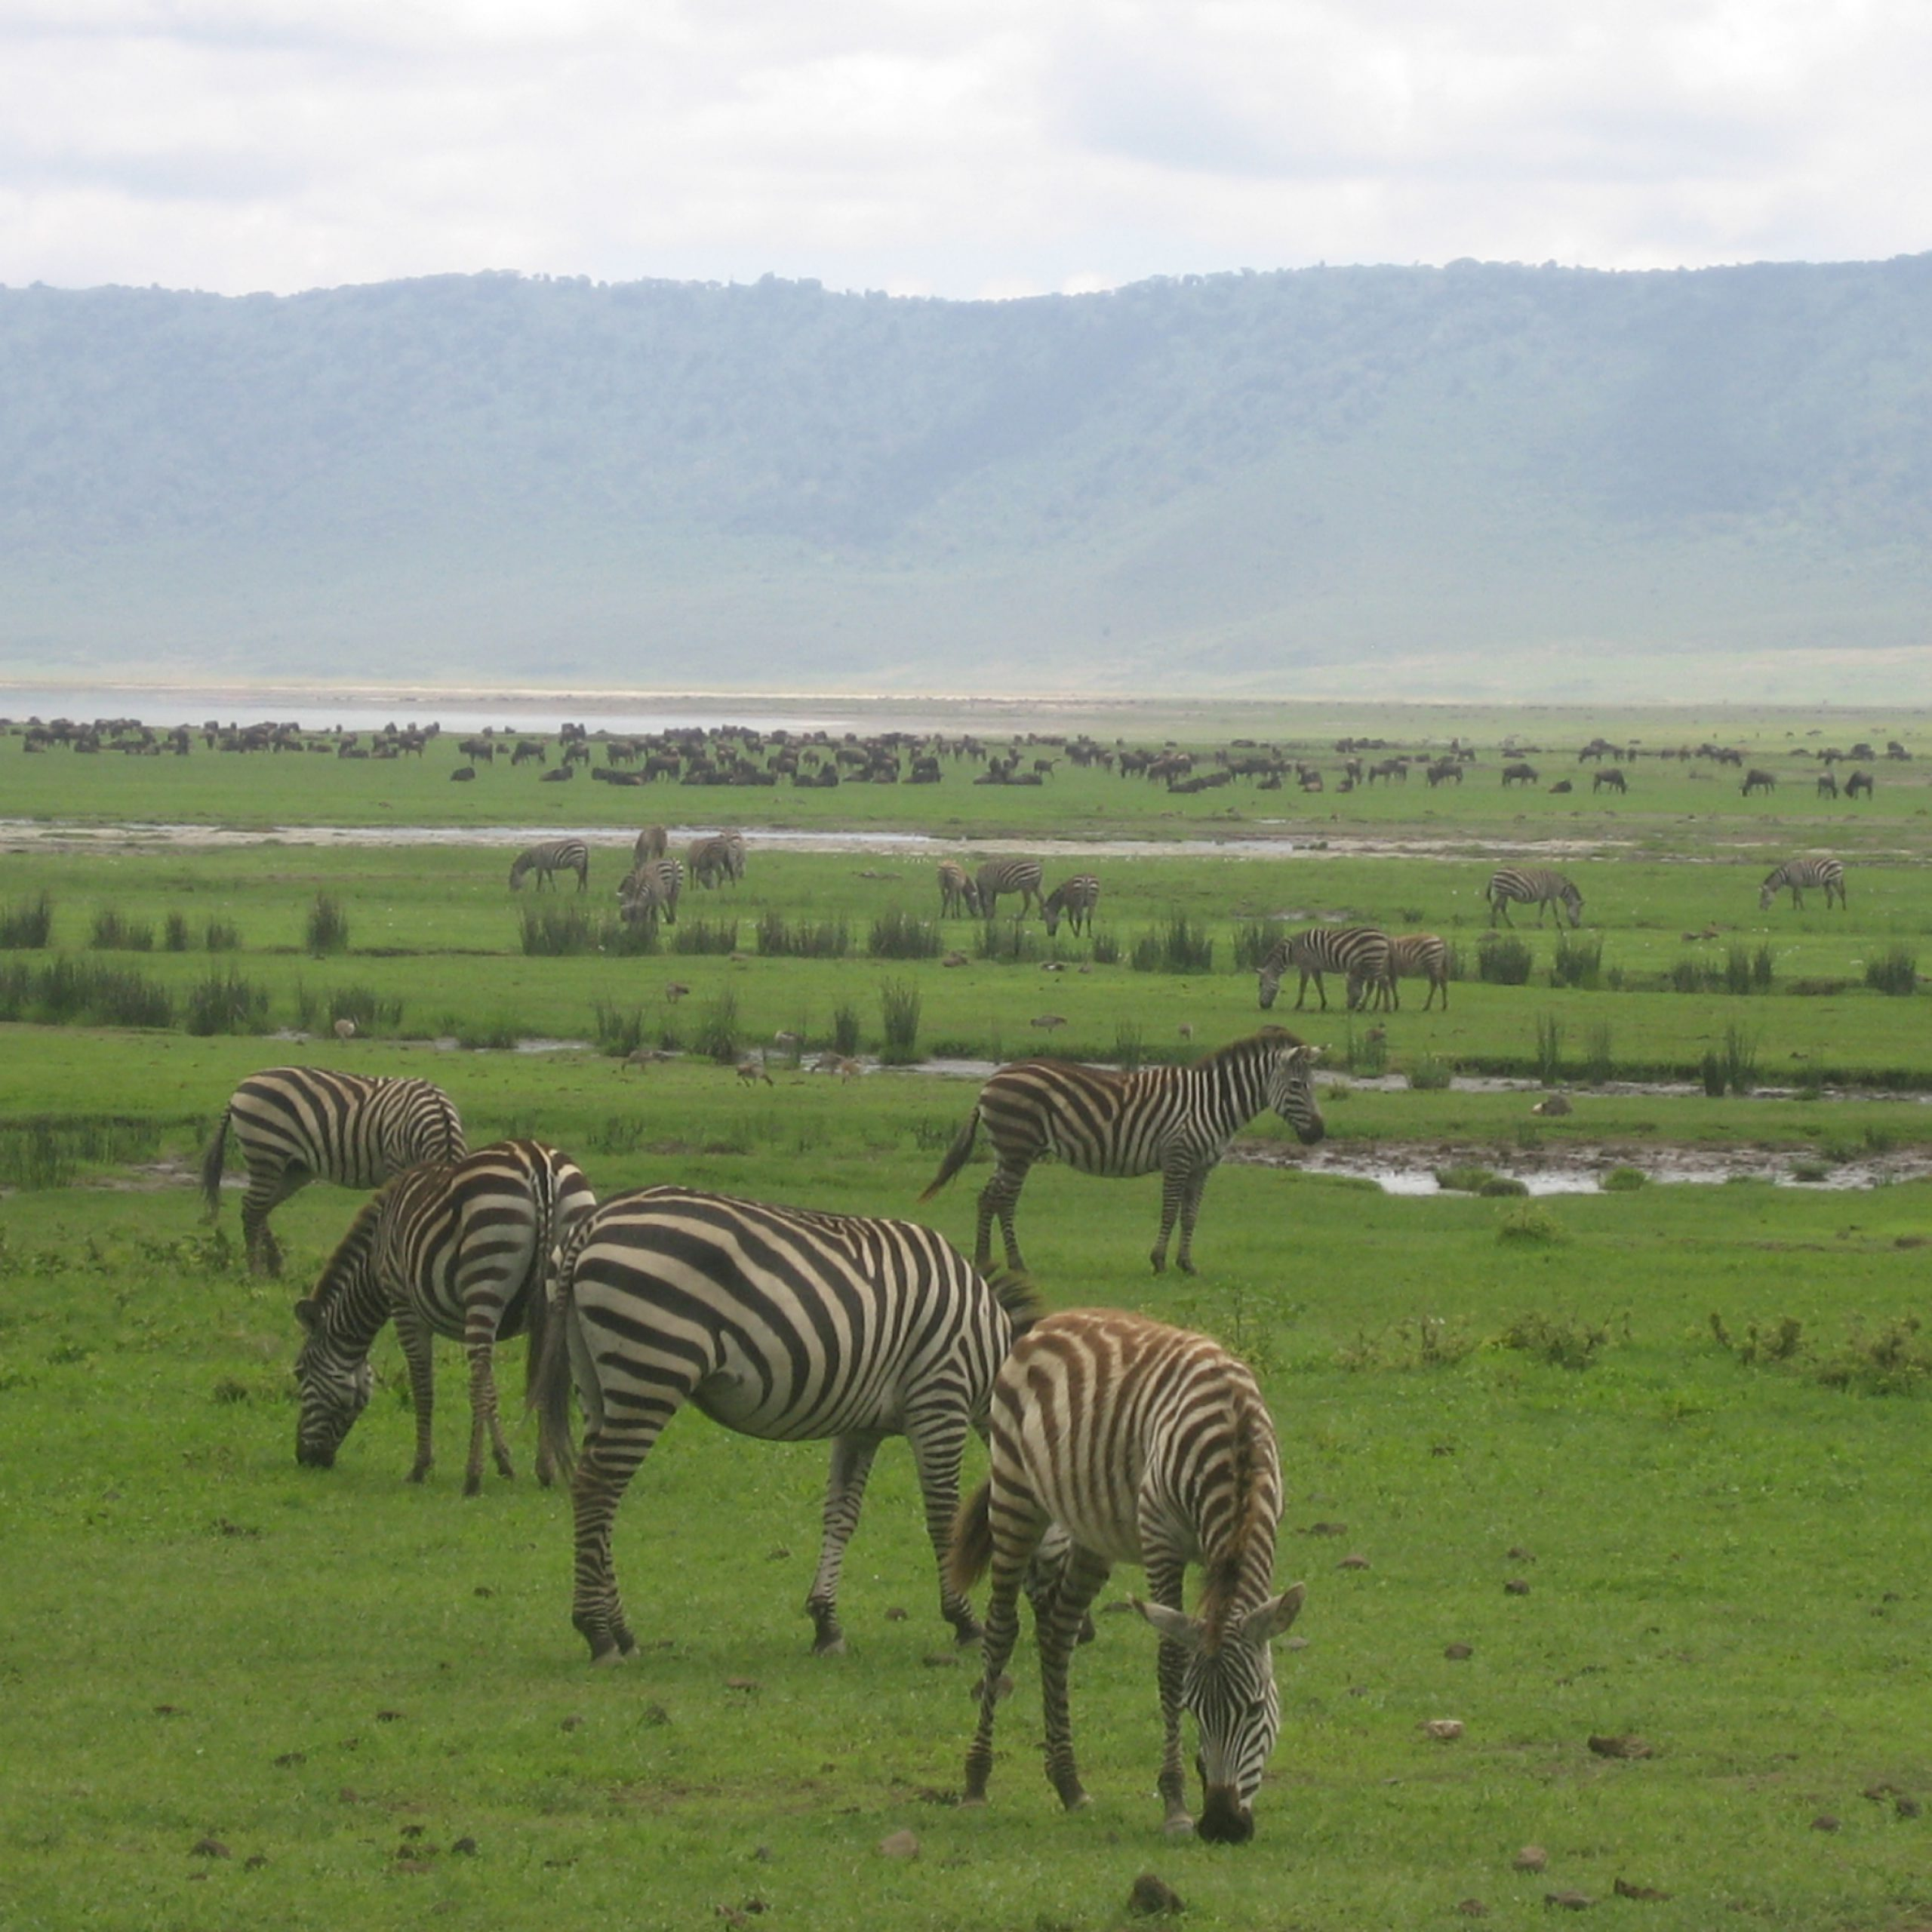 Day 5: Serengeti National Park to Ngorongoro Crater